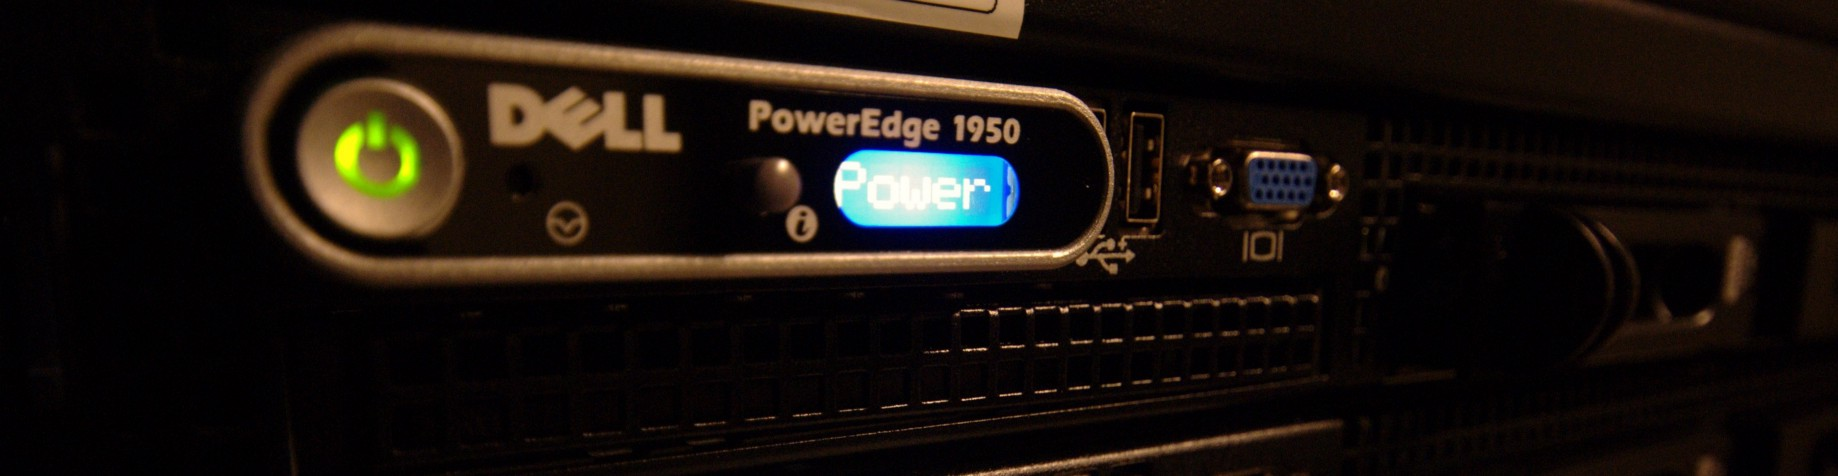 Updating Dell PowerEdge BIOS from Linux · major io